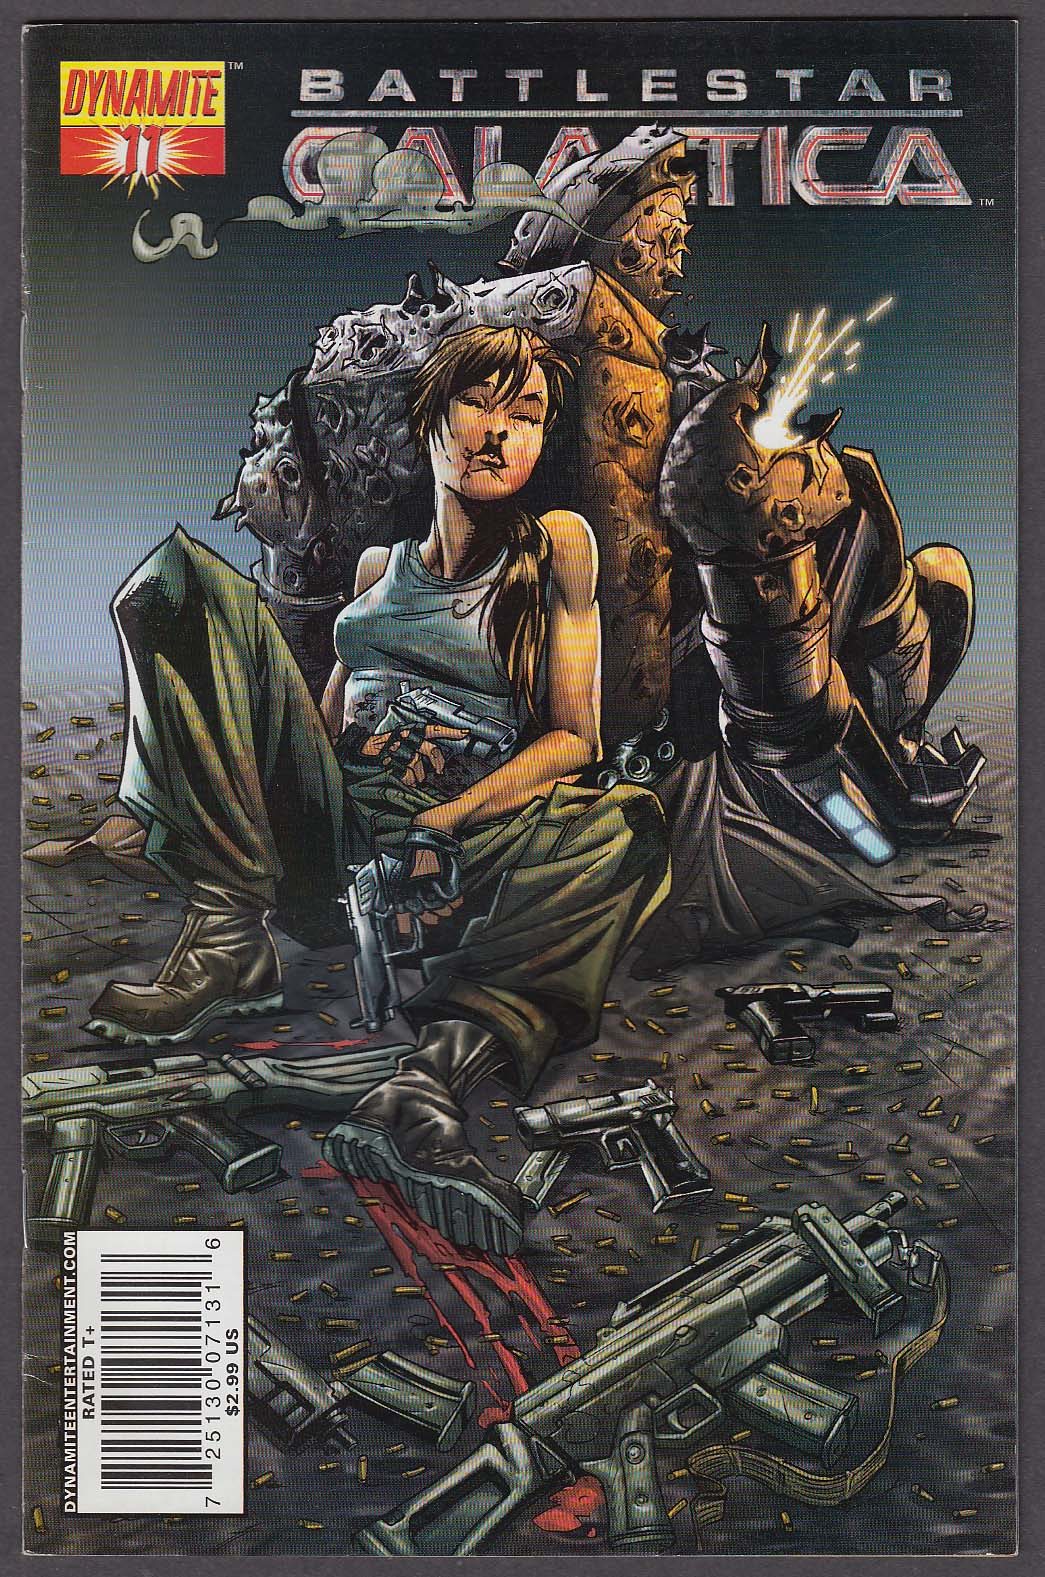 Image for BATTLESTAR GALACTICA #11 Dynamite comic book 2007 1st Printing